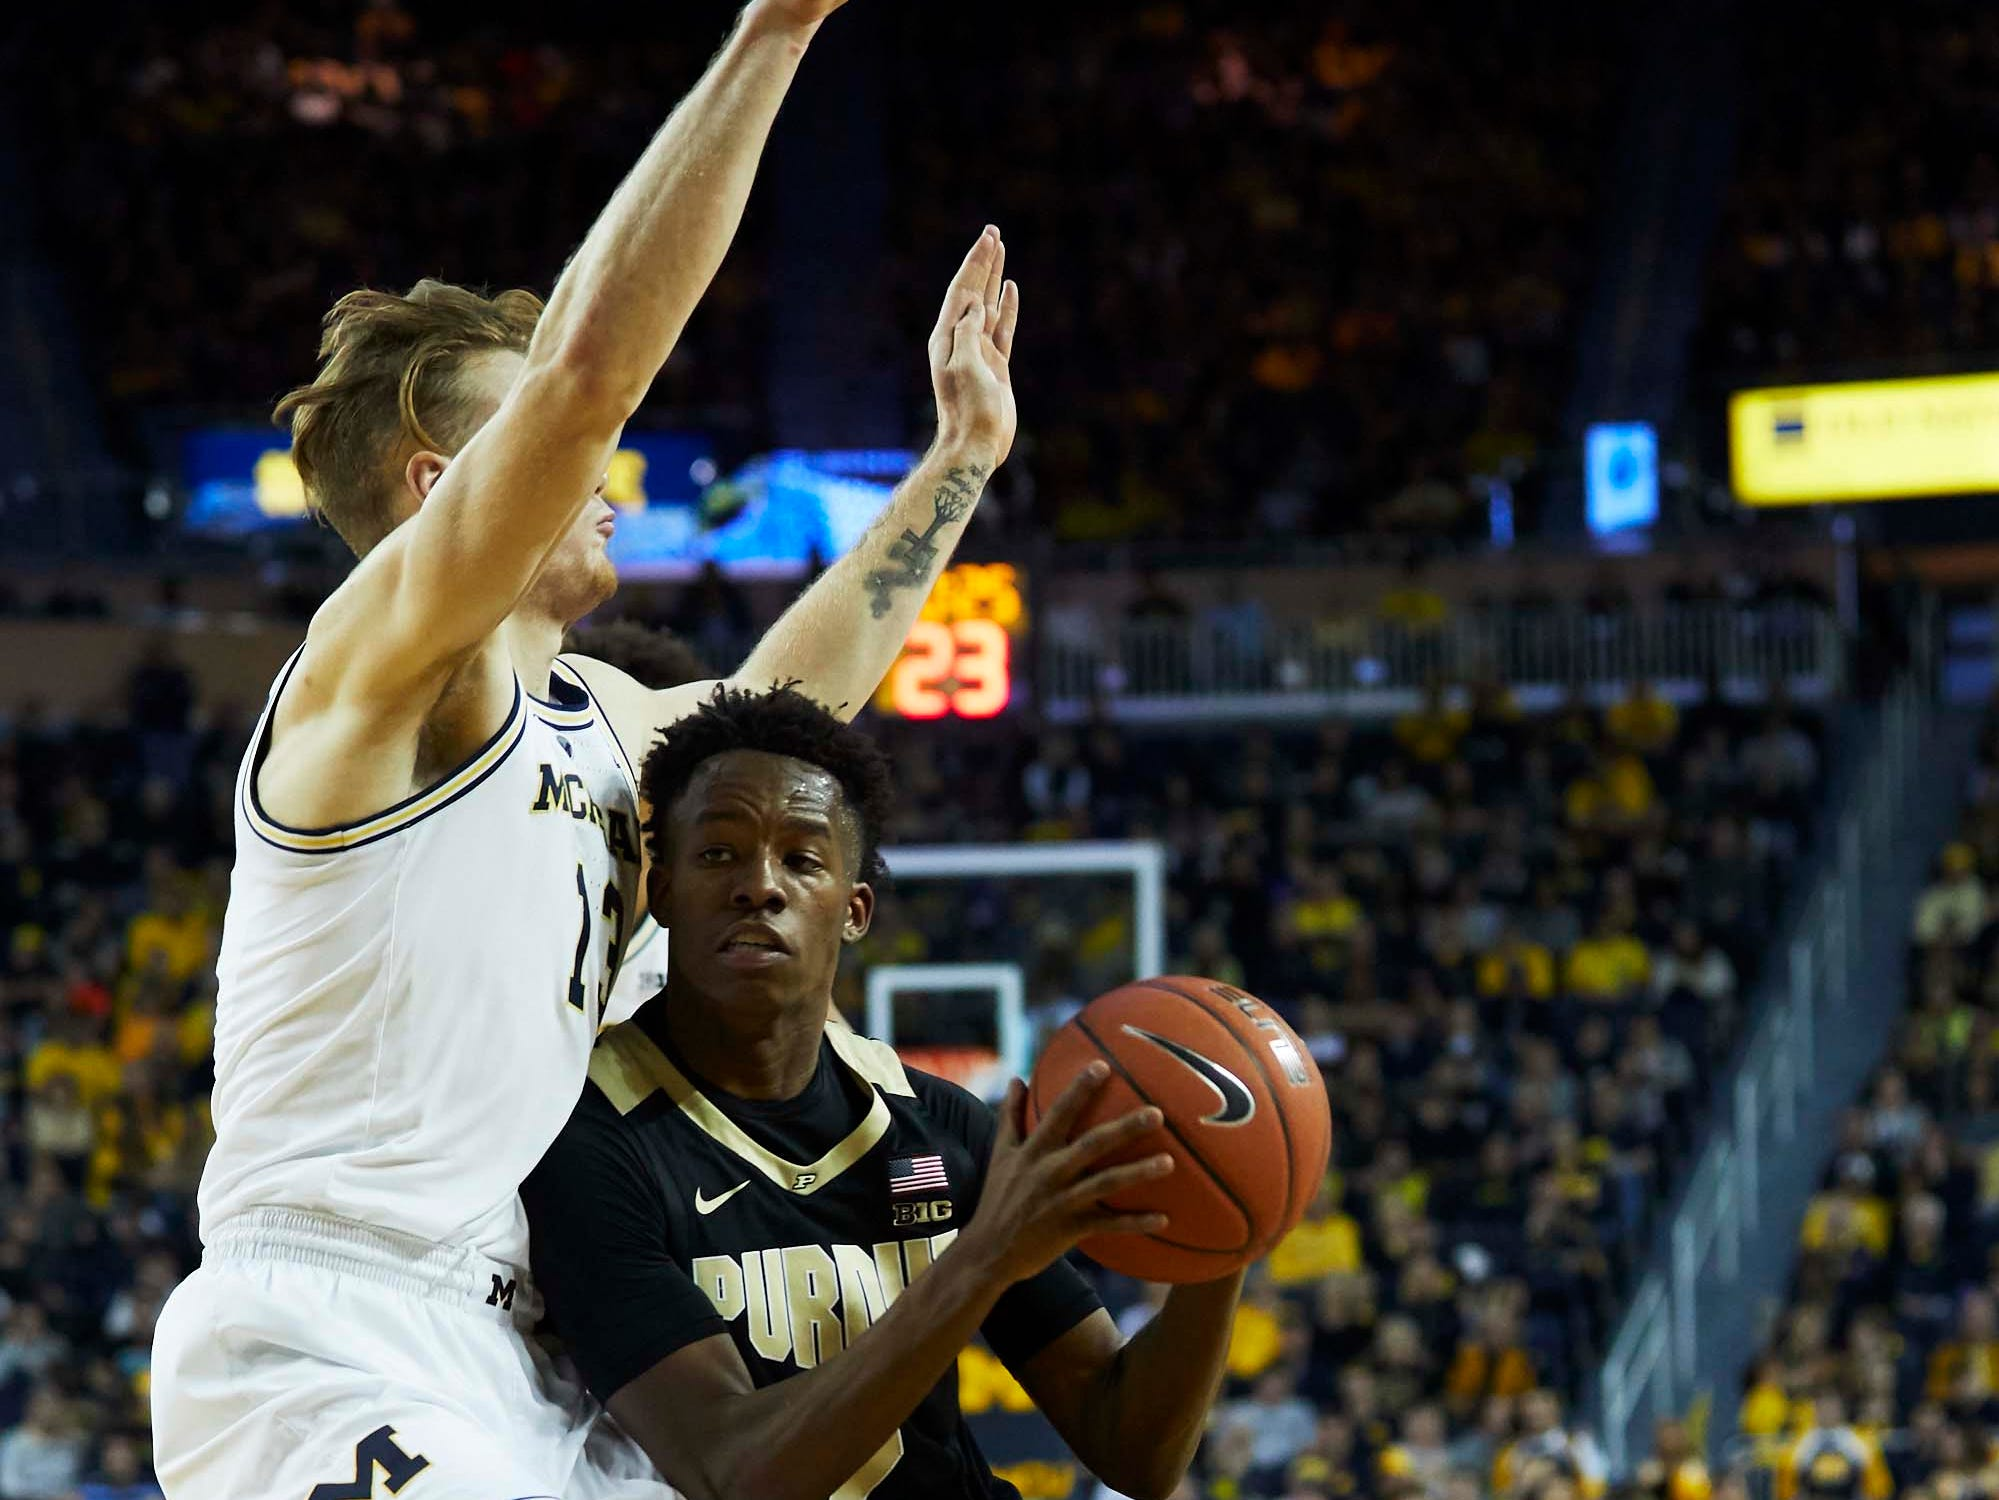 Dec 1, 2018; Ann Arbor, MI, USA; Purdue Boilermakers guard Eric Hunter Jr. (2) dribbles defended by Michigan Wolverines forward Ignas Brazdeikis (13) in the second half at Crisler Center. Mandatory Credit: Rick Osentoski-USA TODAY Sports